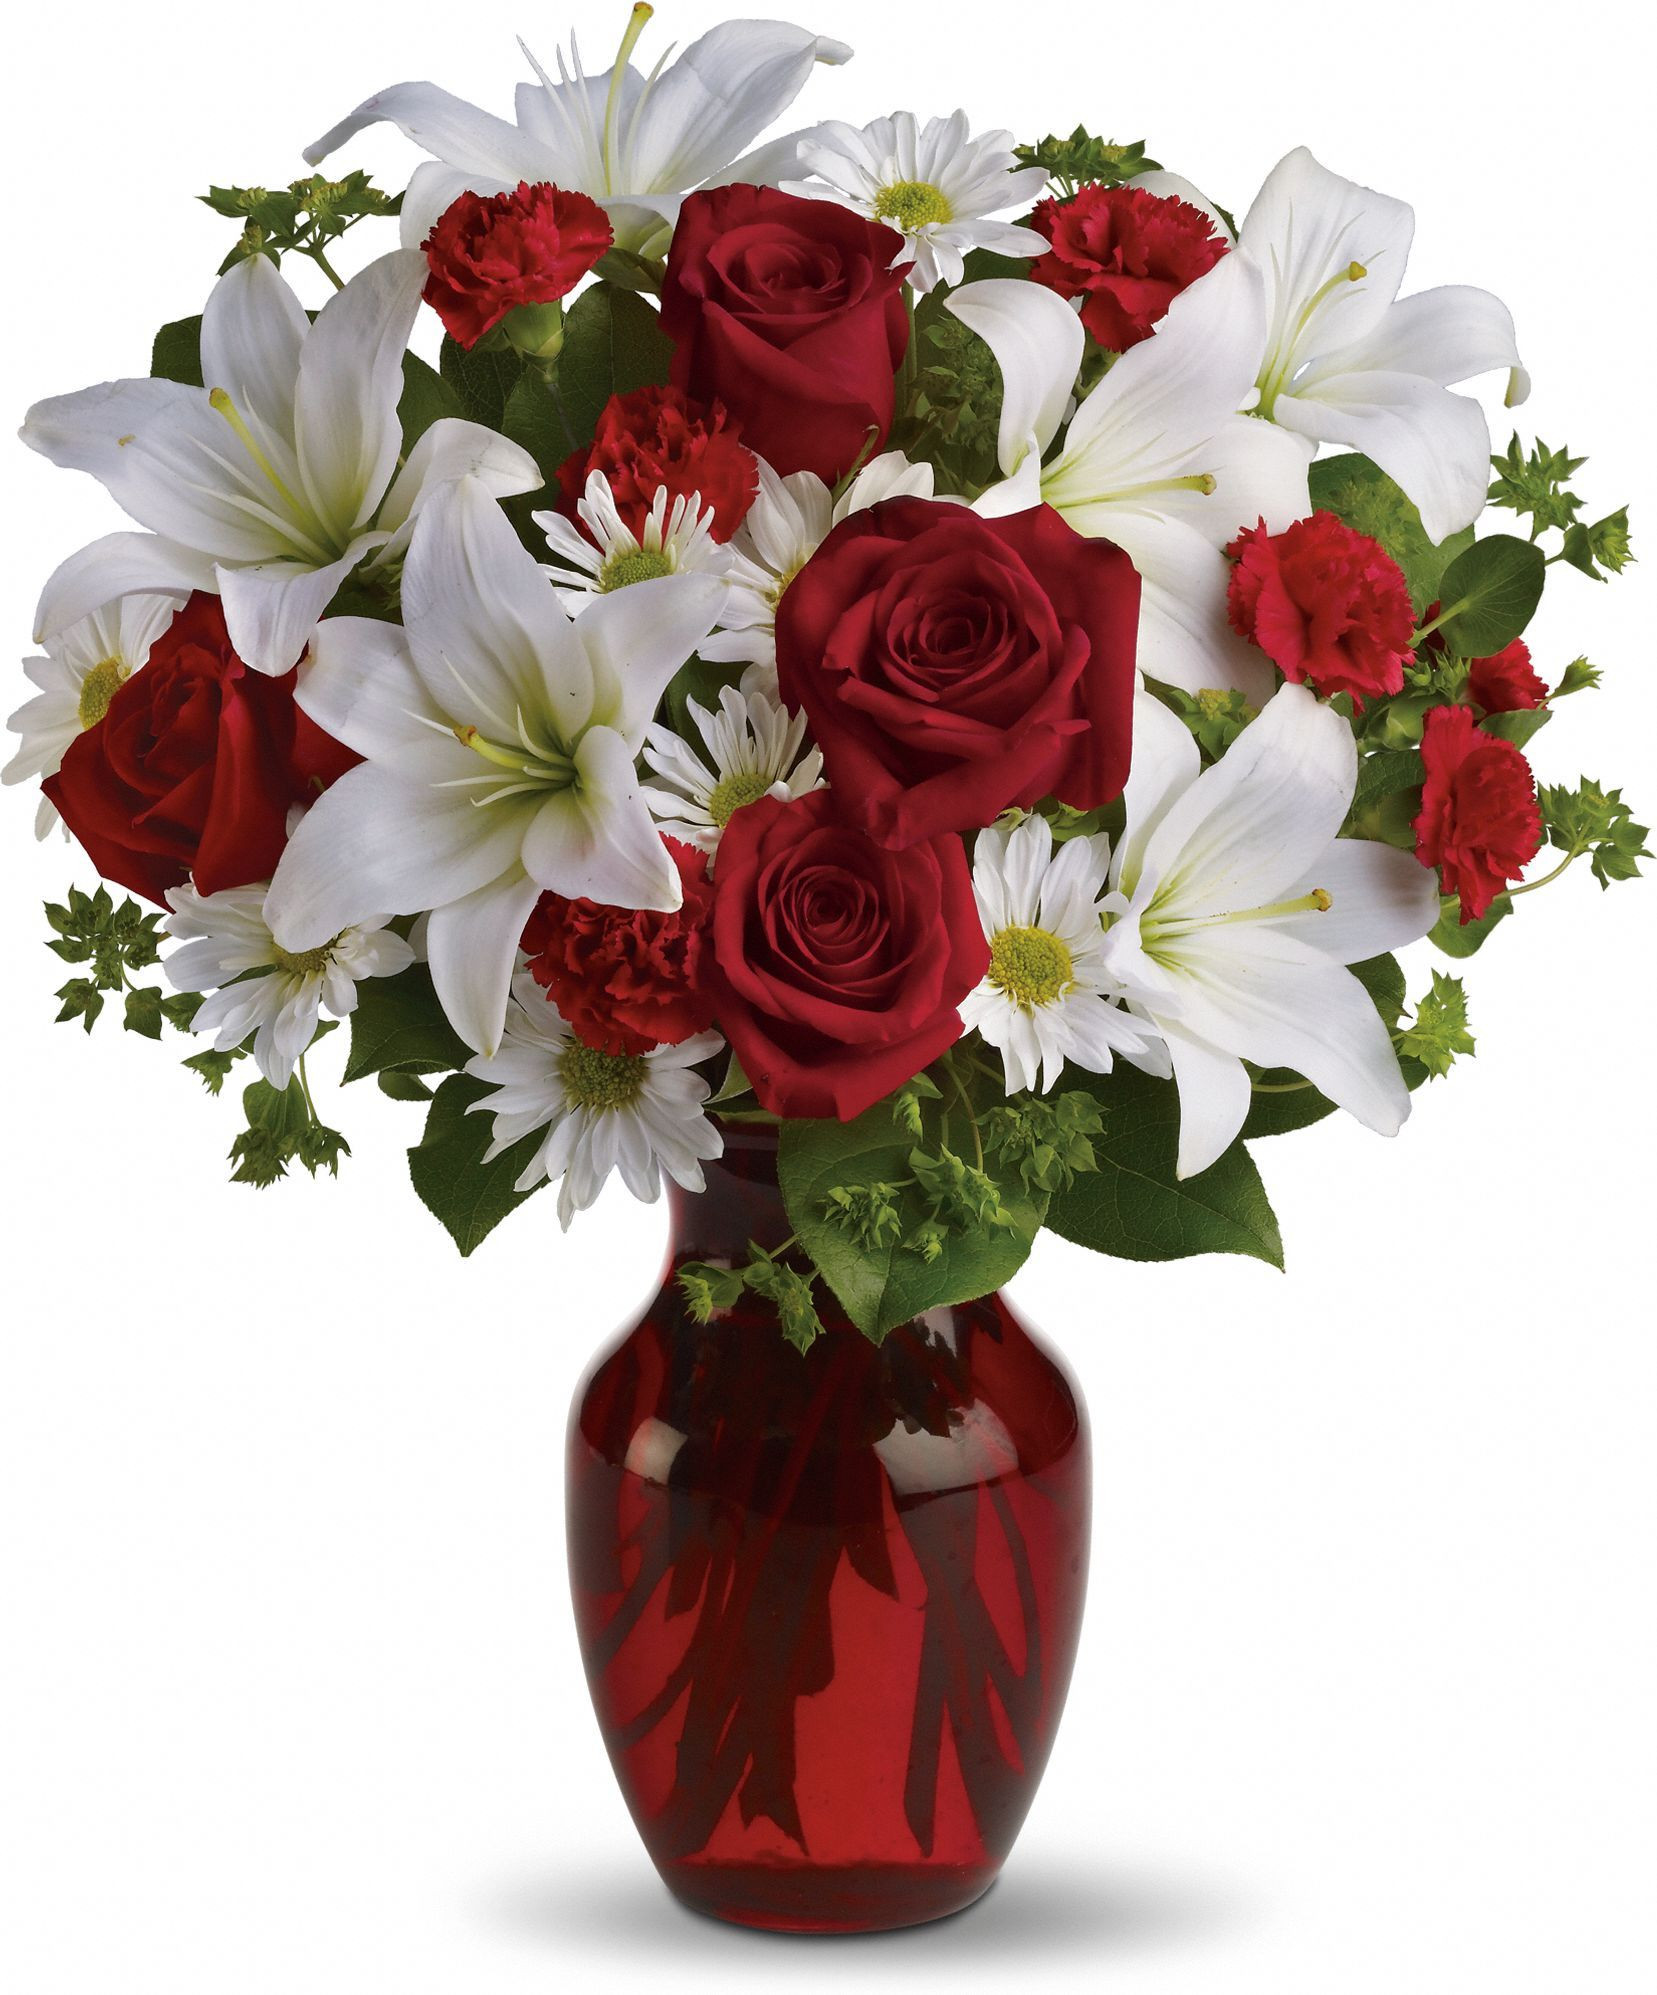 Be My Love Bouquet with Red Roses Save on this bouquet and many others with coupon code TFMDAYOK1B2 fer expires 05 14 2012